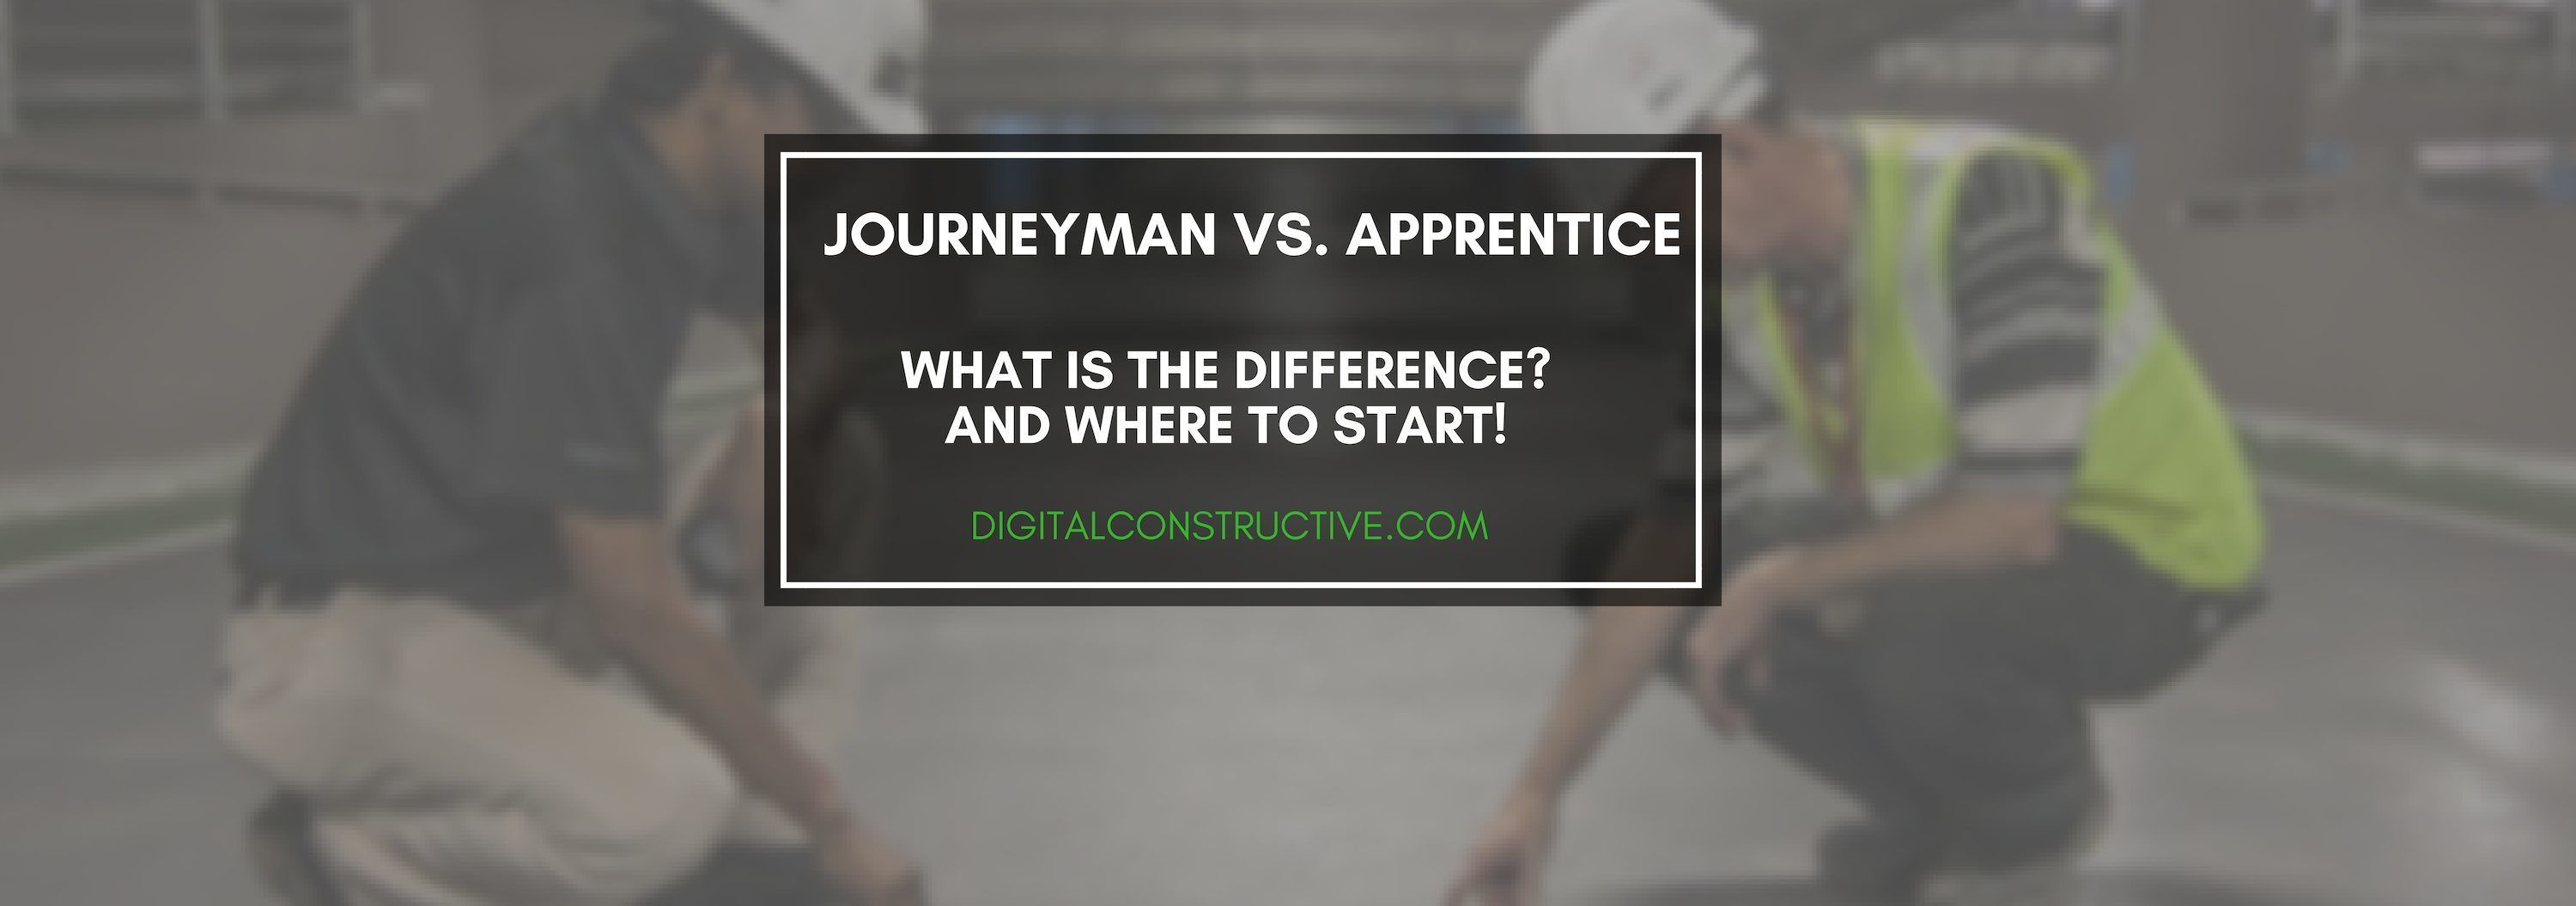 two contractors looking down at something on the ground. blog post breaks down the difference between a journeyman and apprentice